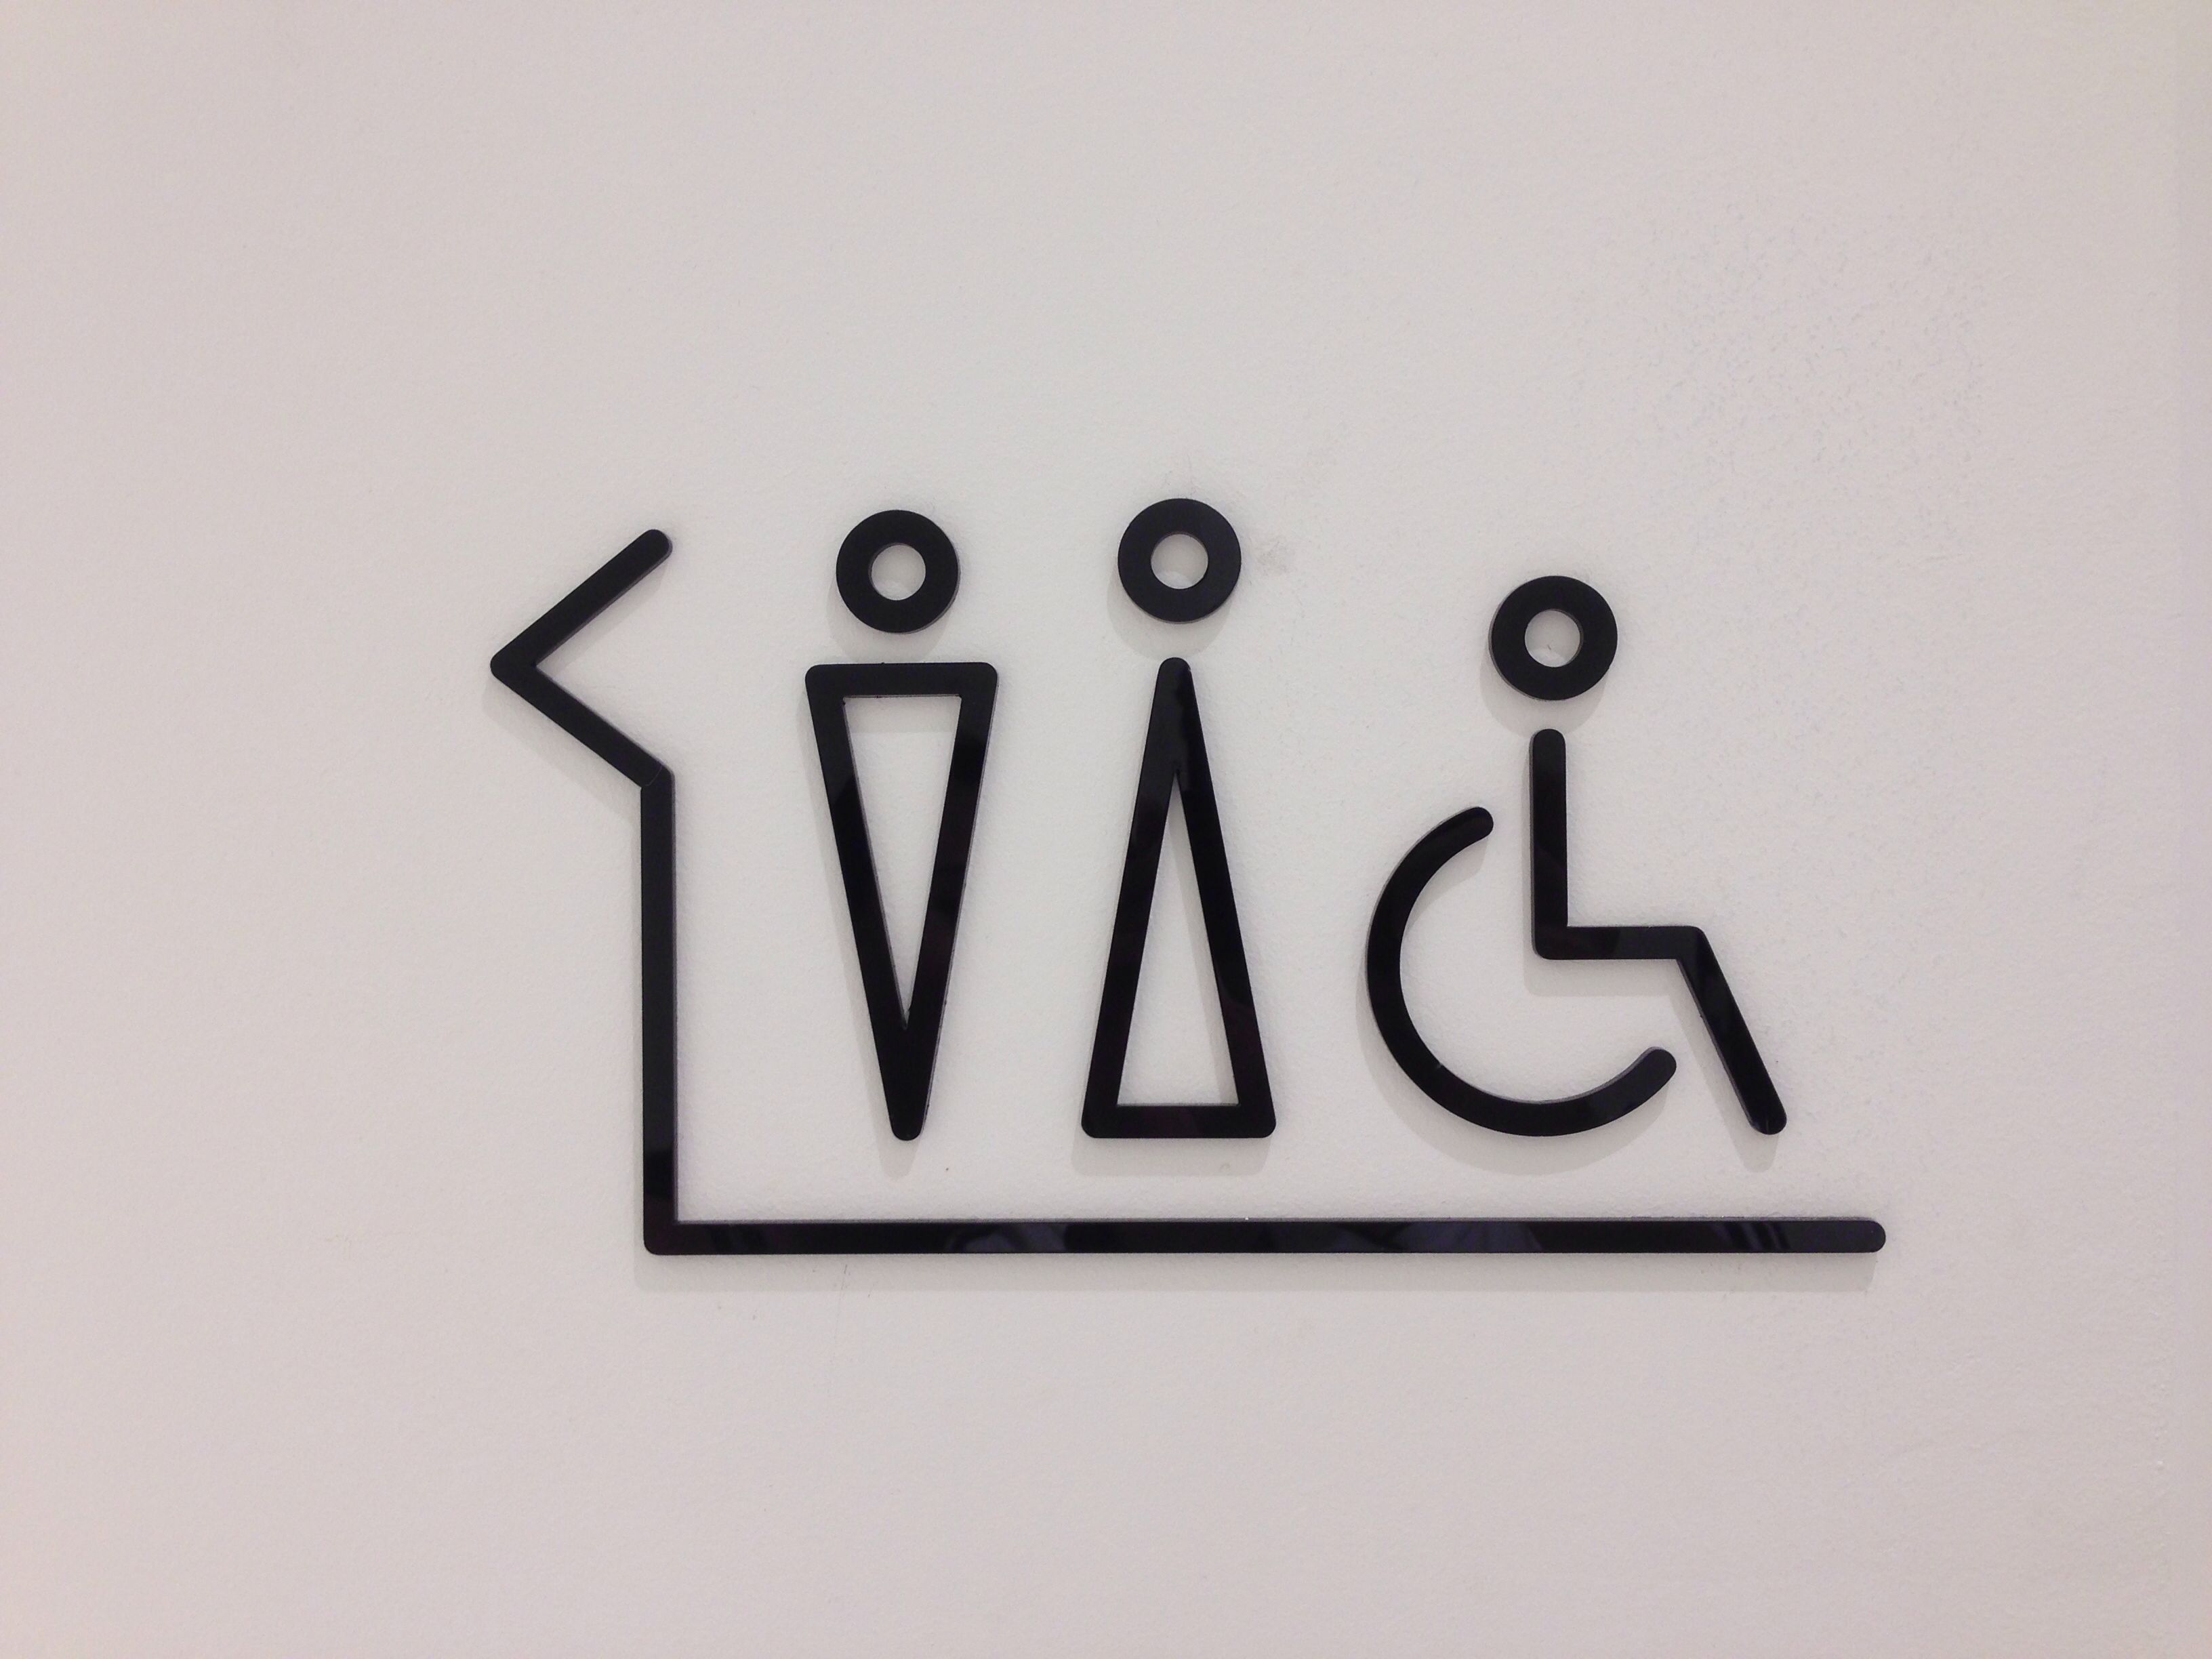 Toilet Sign Signage Environmental Pinterest Toilet Signage And Pictogram